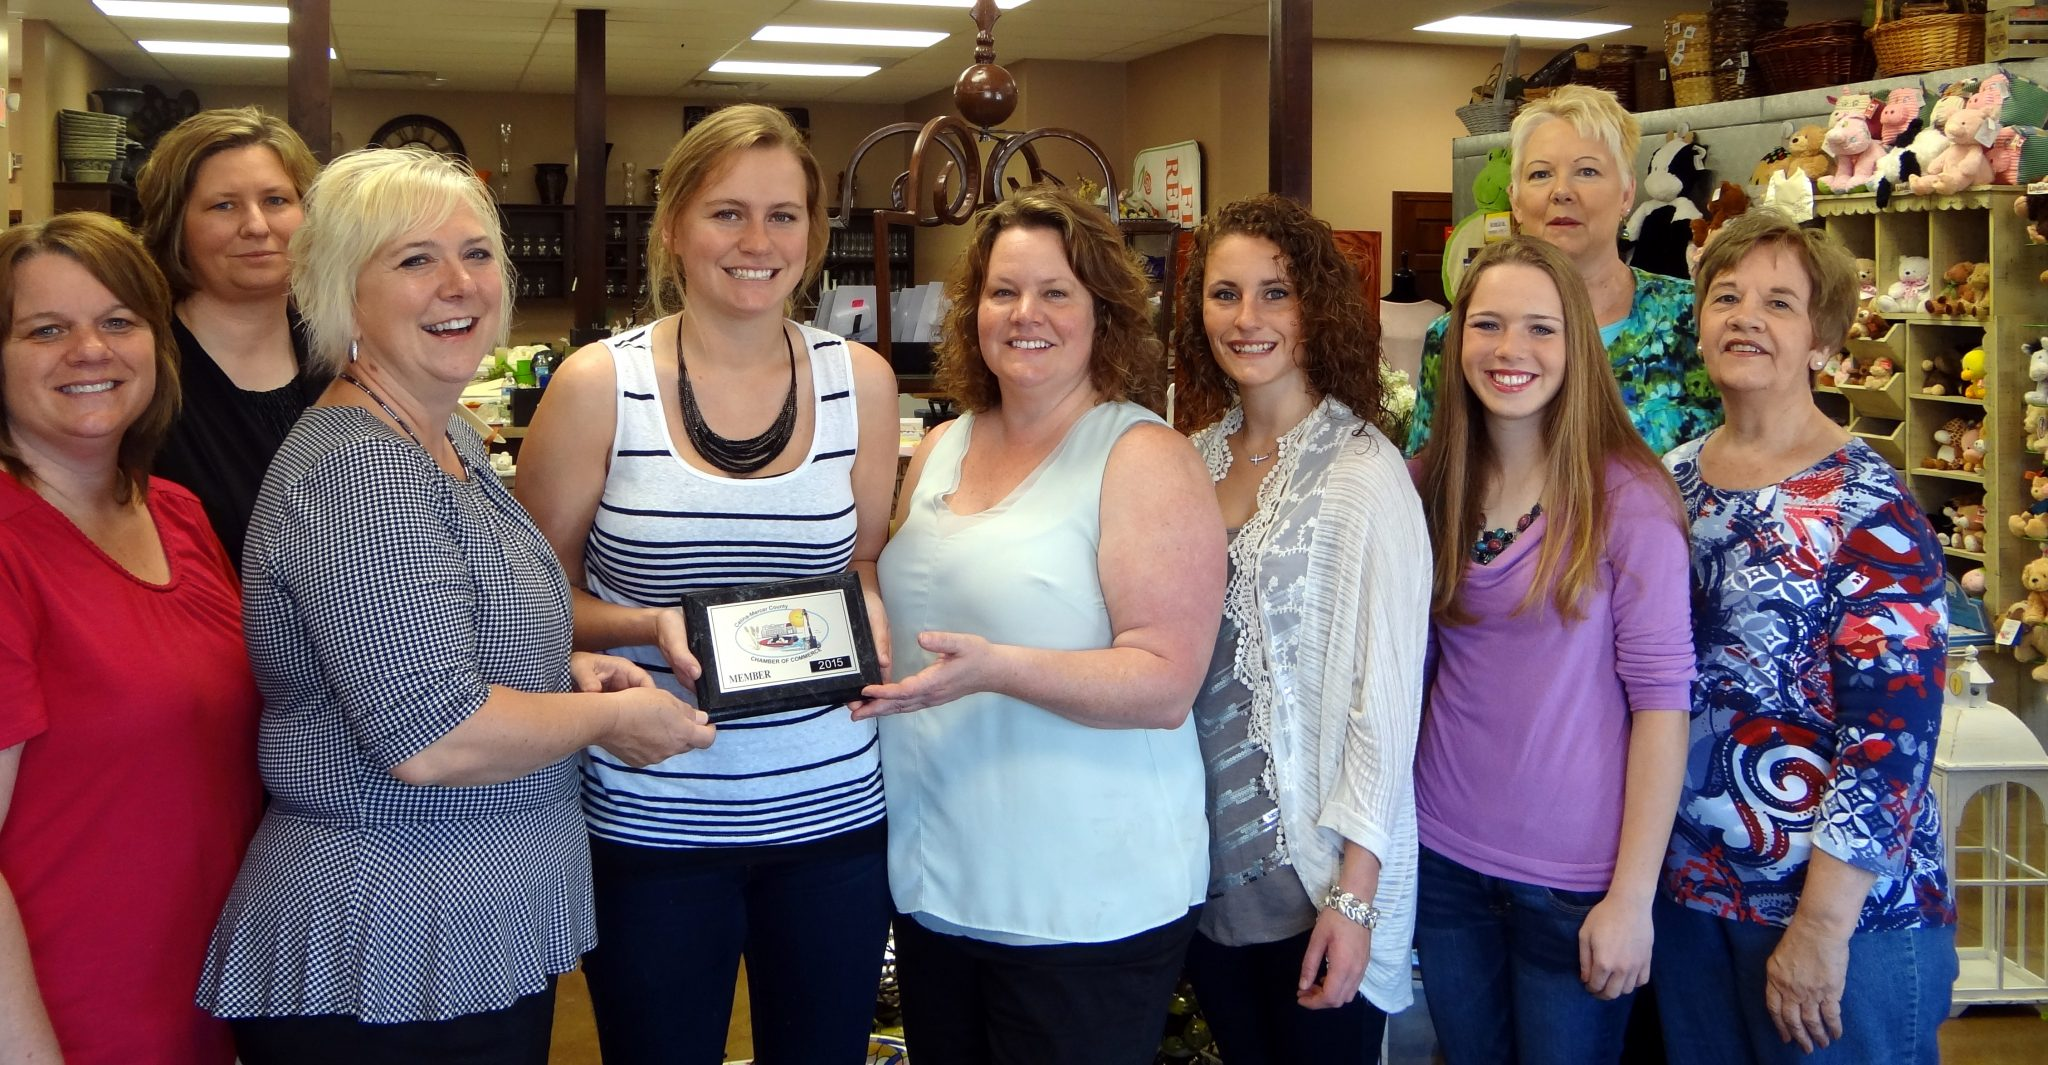 Floral Reflections Joins Chamber Celina Mercer County